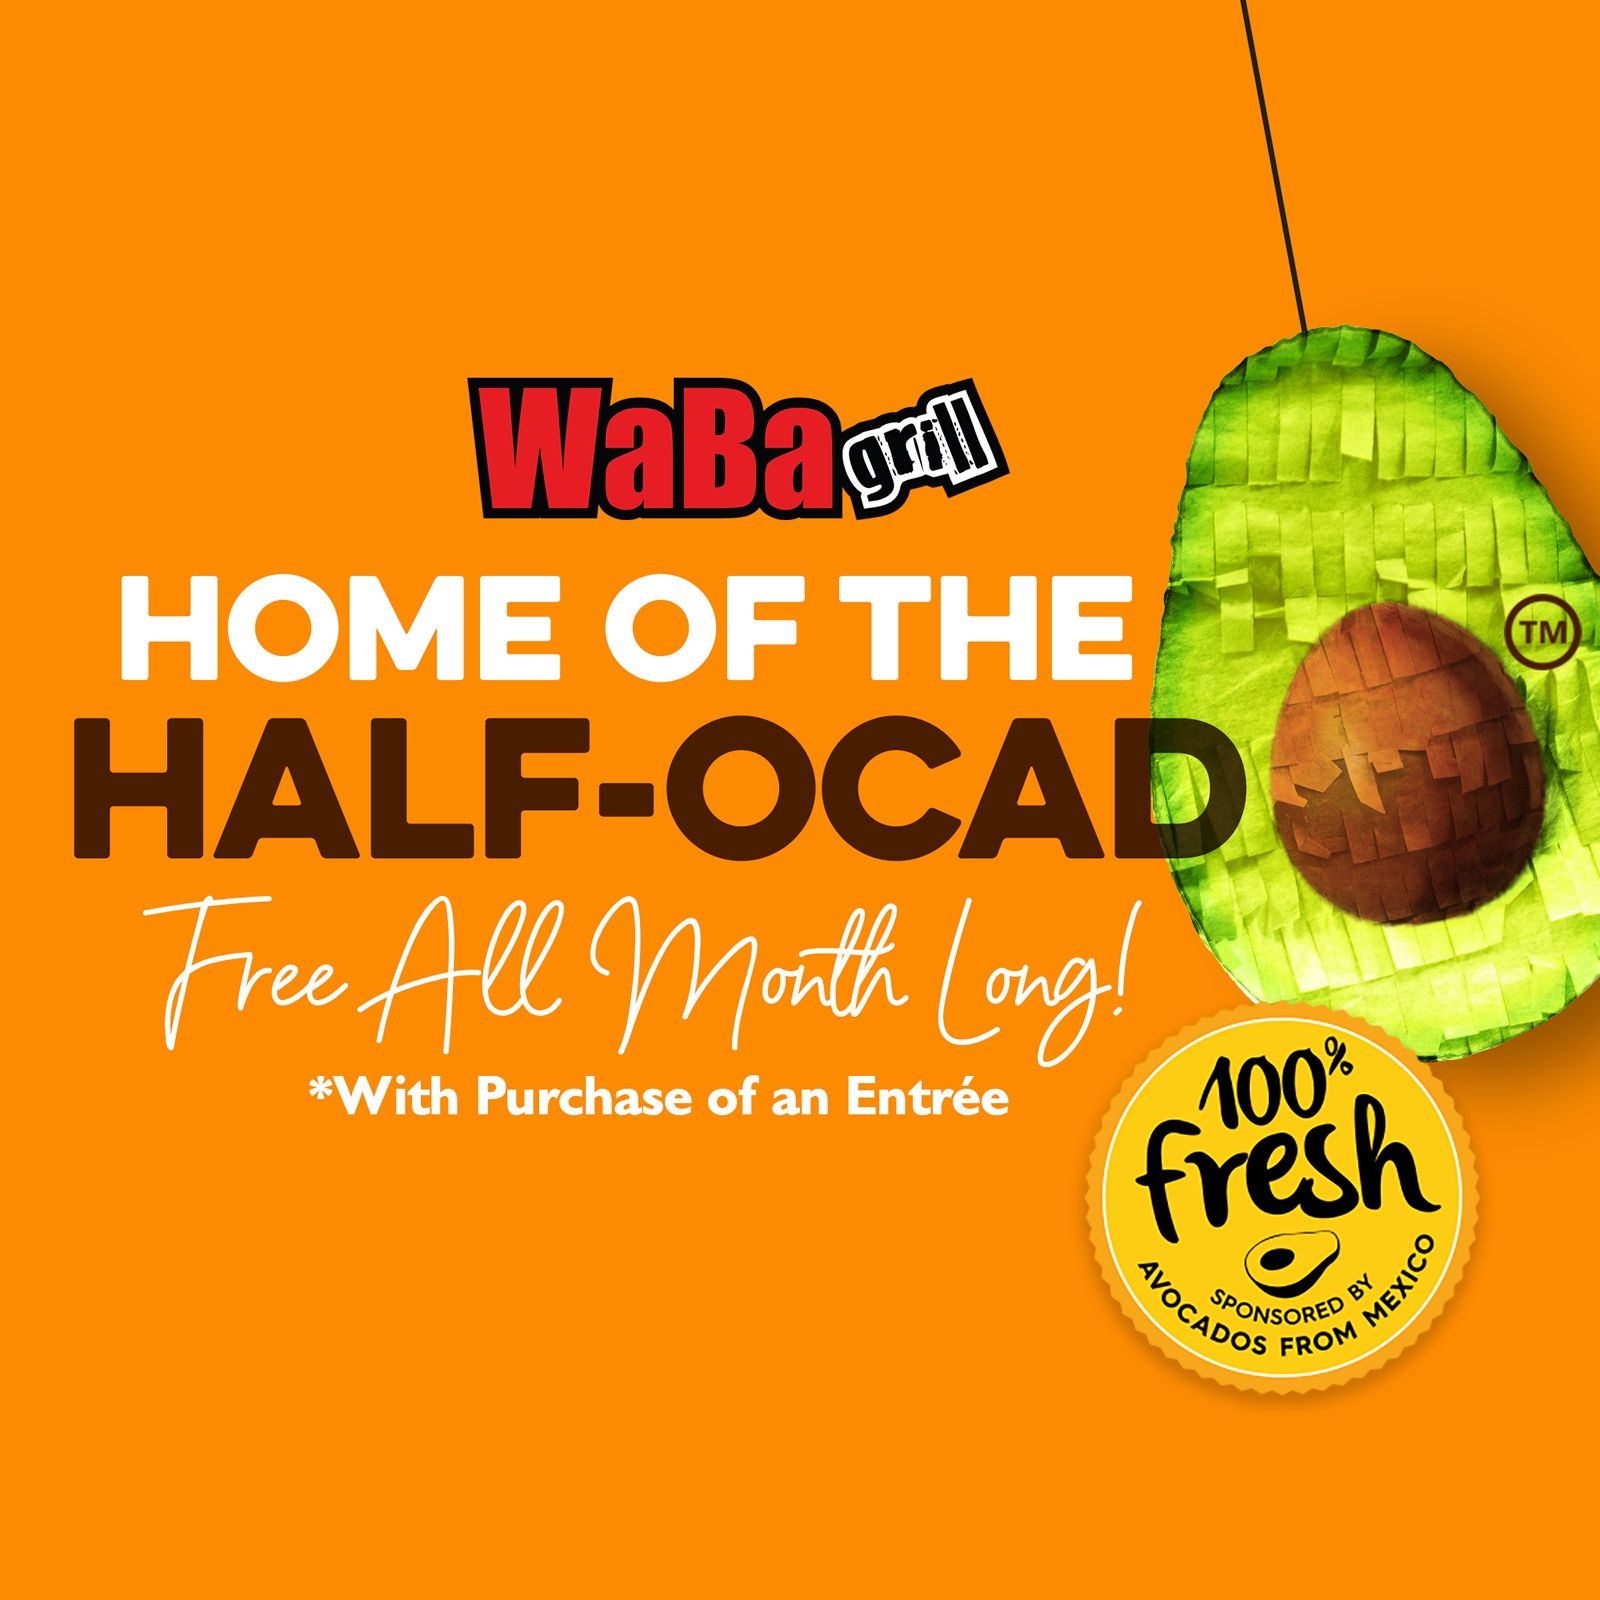 WaBa Grill Offering Free Avocado With Entrée Purchase in May in Partnership With the Avocados From Mexico Brand